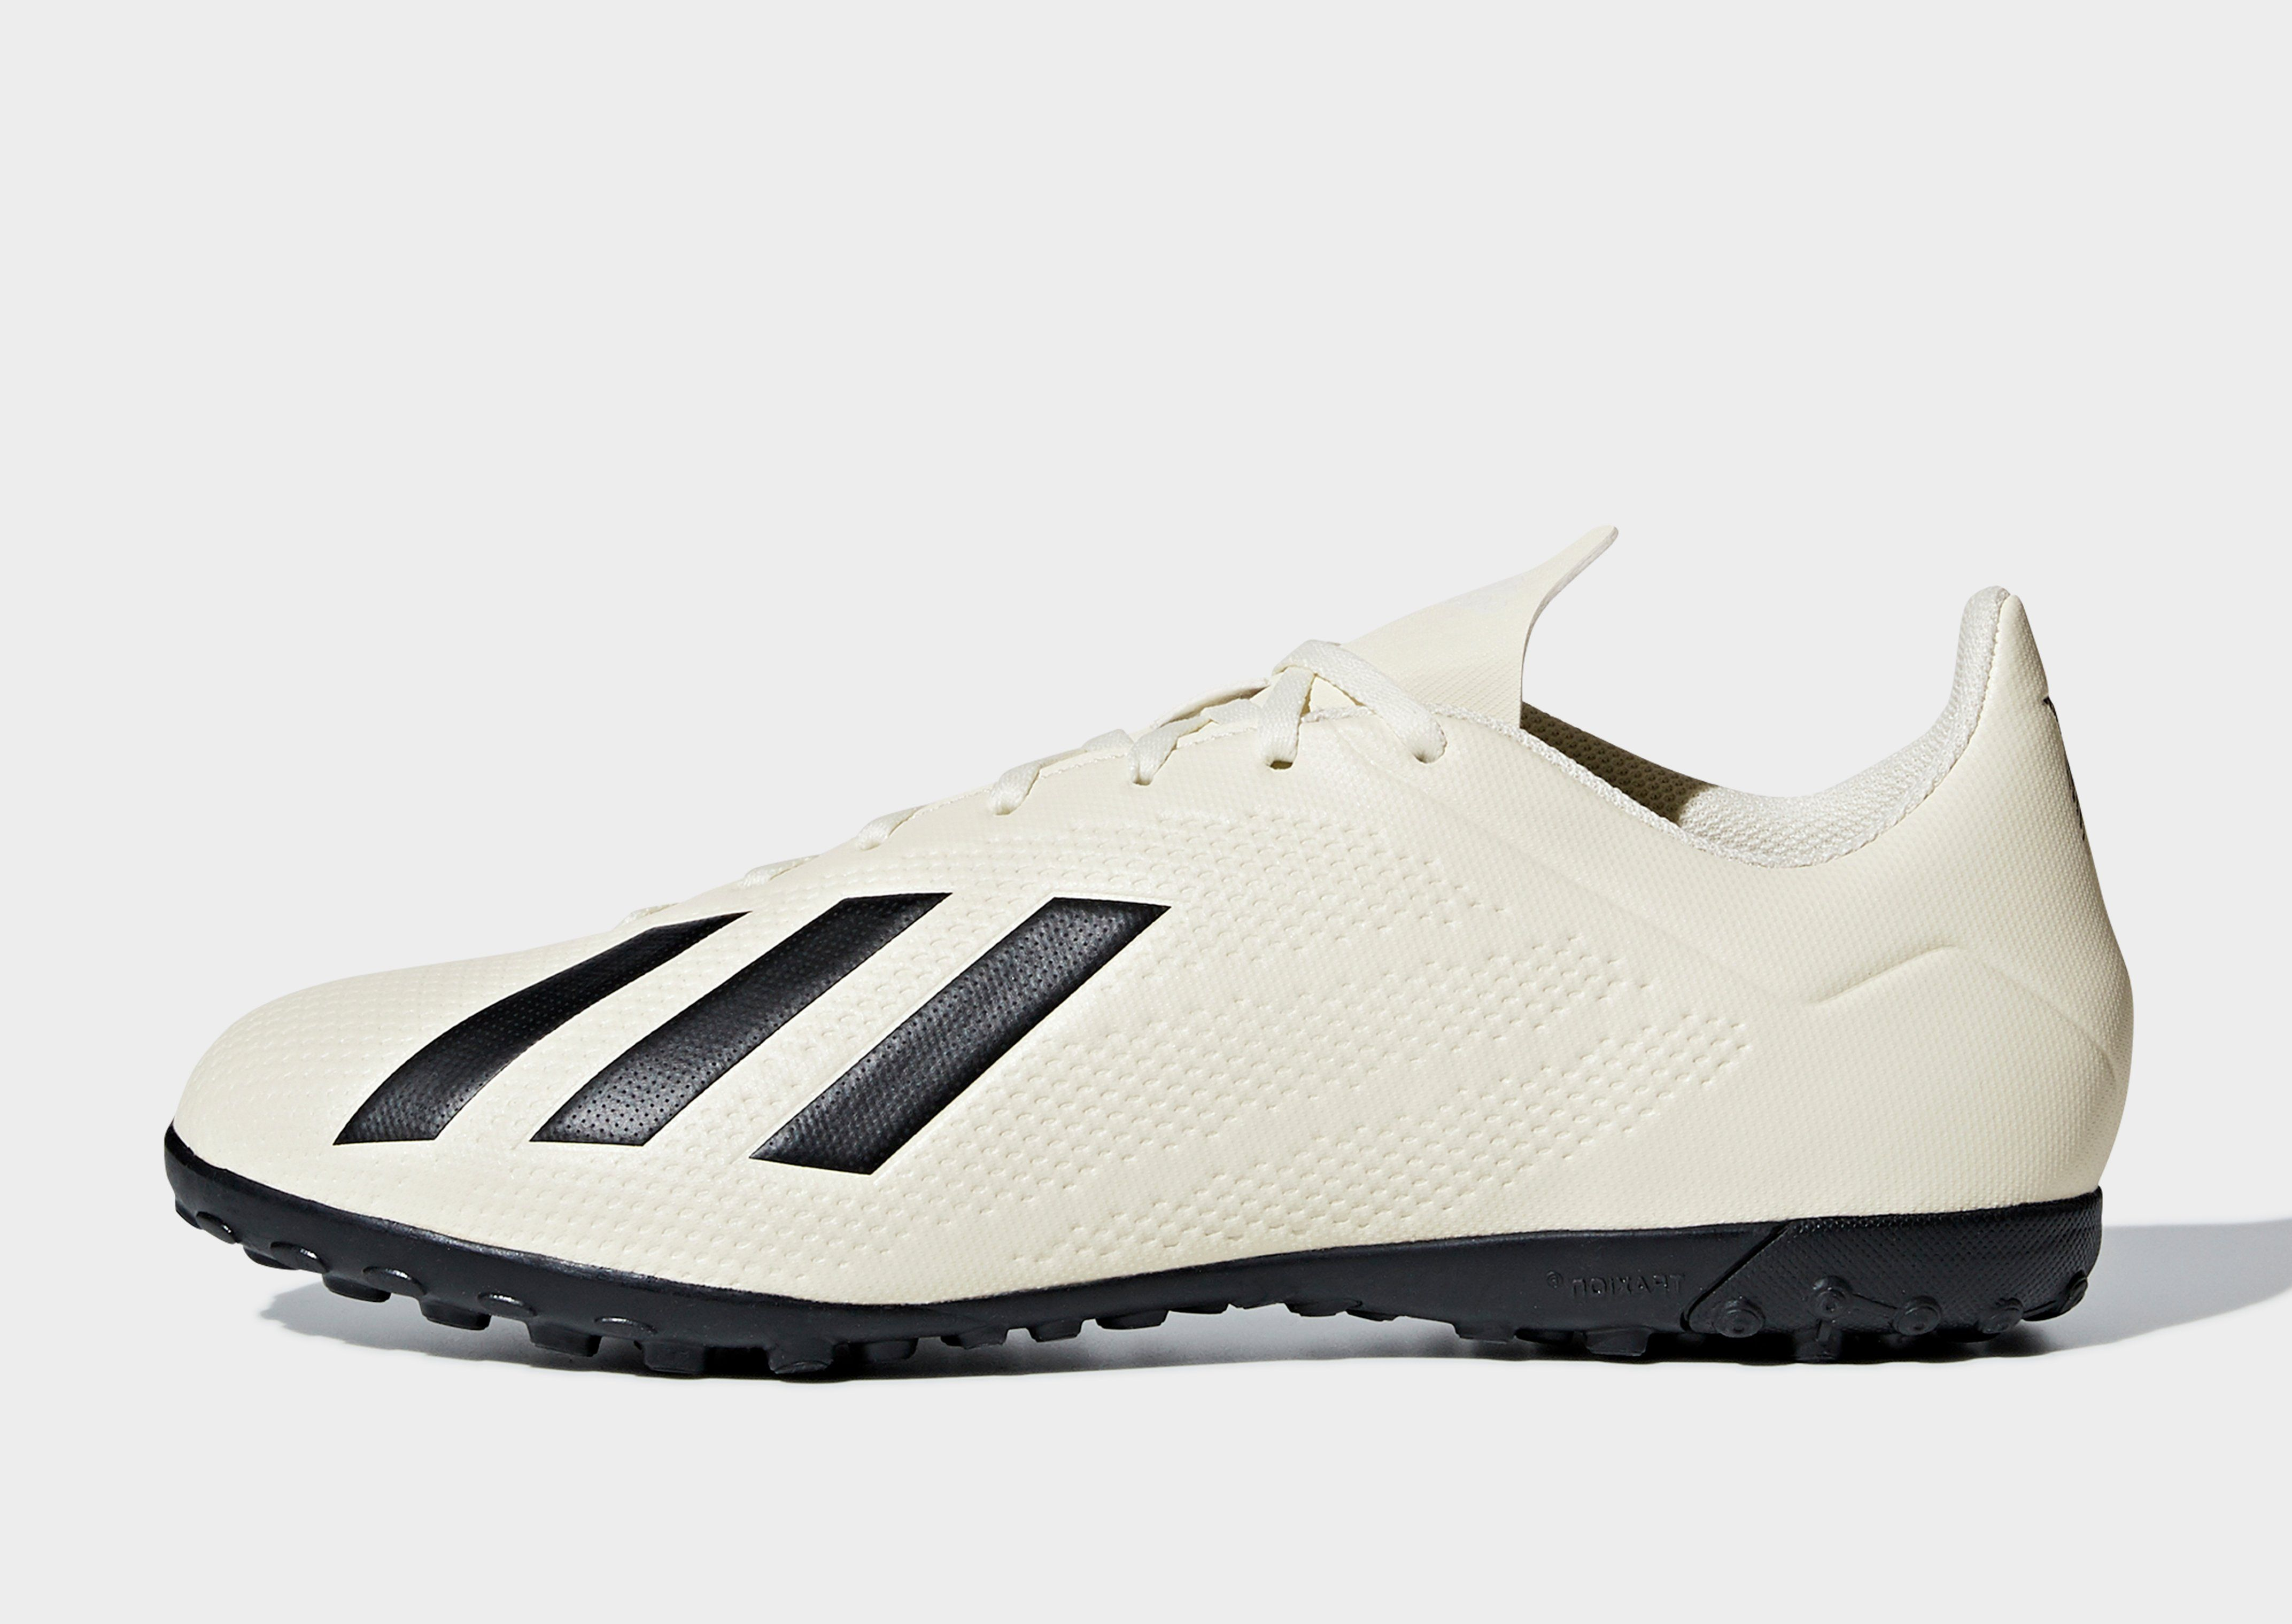 finest selection 4e9de 051f9 adidas Spectral Mode X 18.4 TF  JD Sports